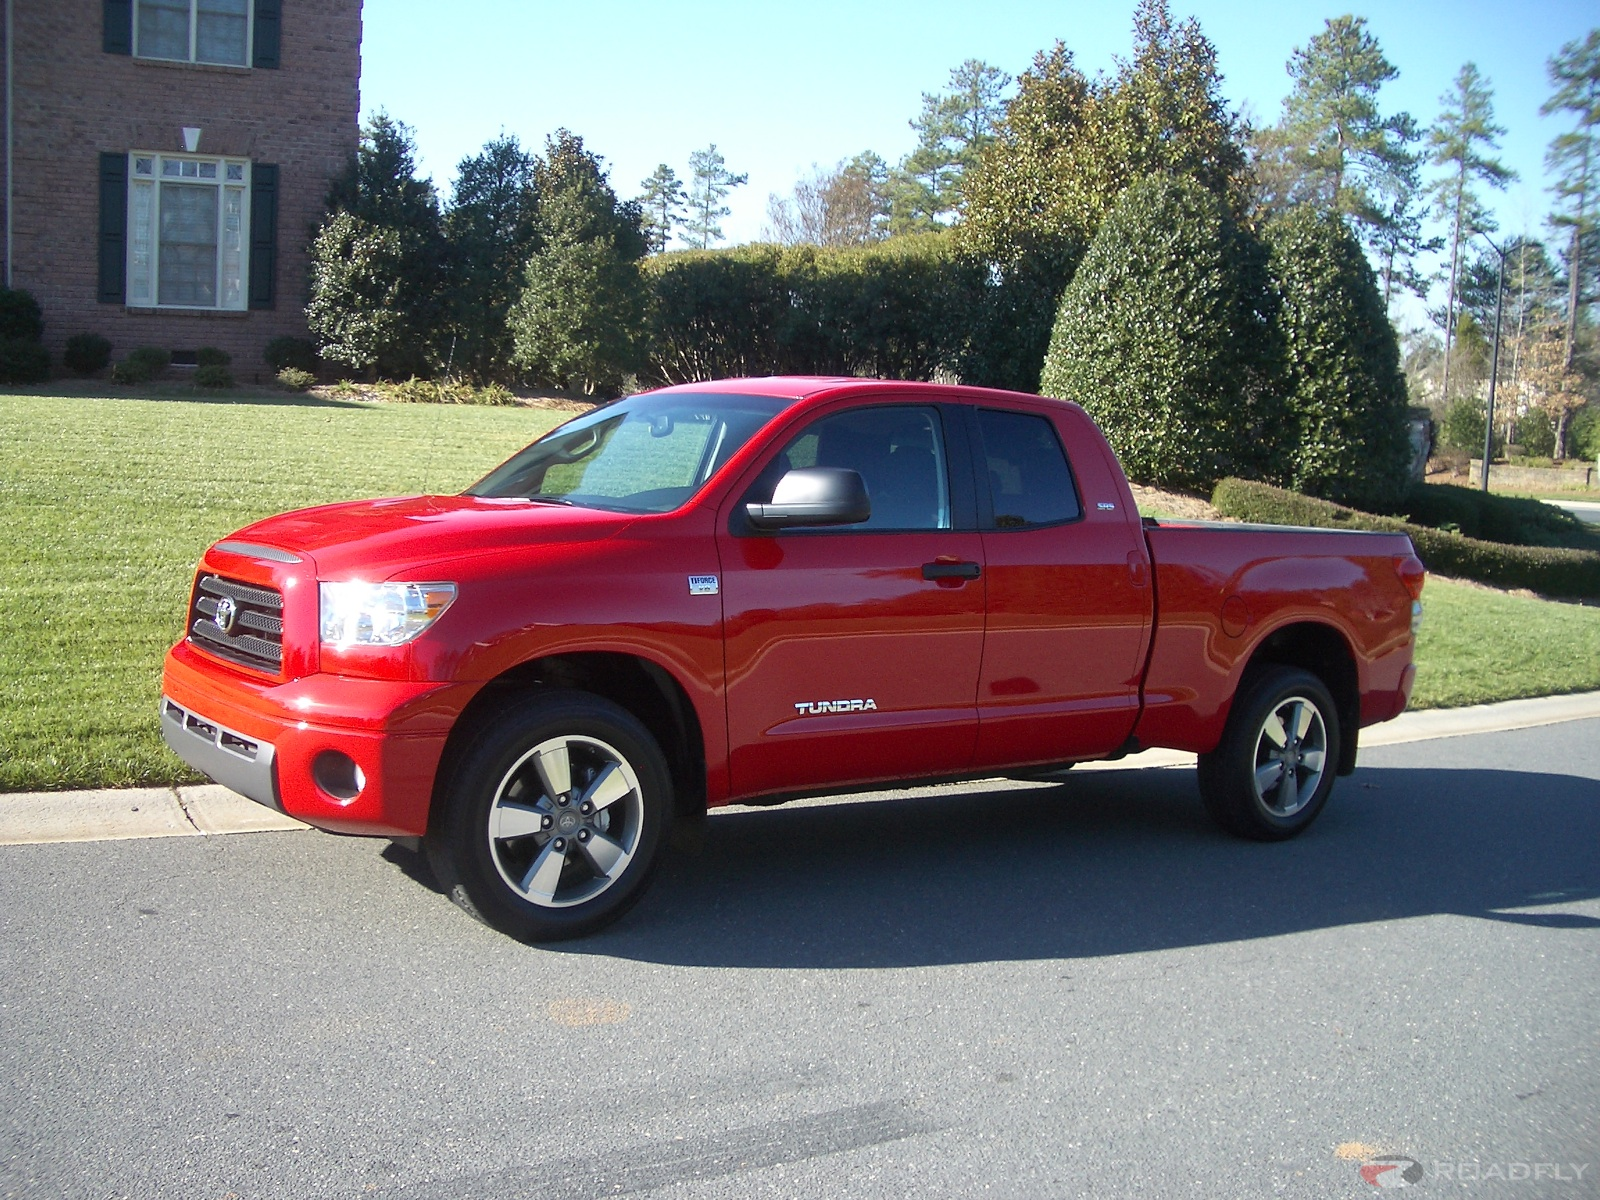 Toyota Tundra 2007 photo - 4